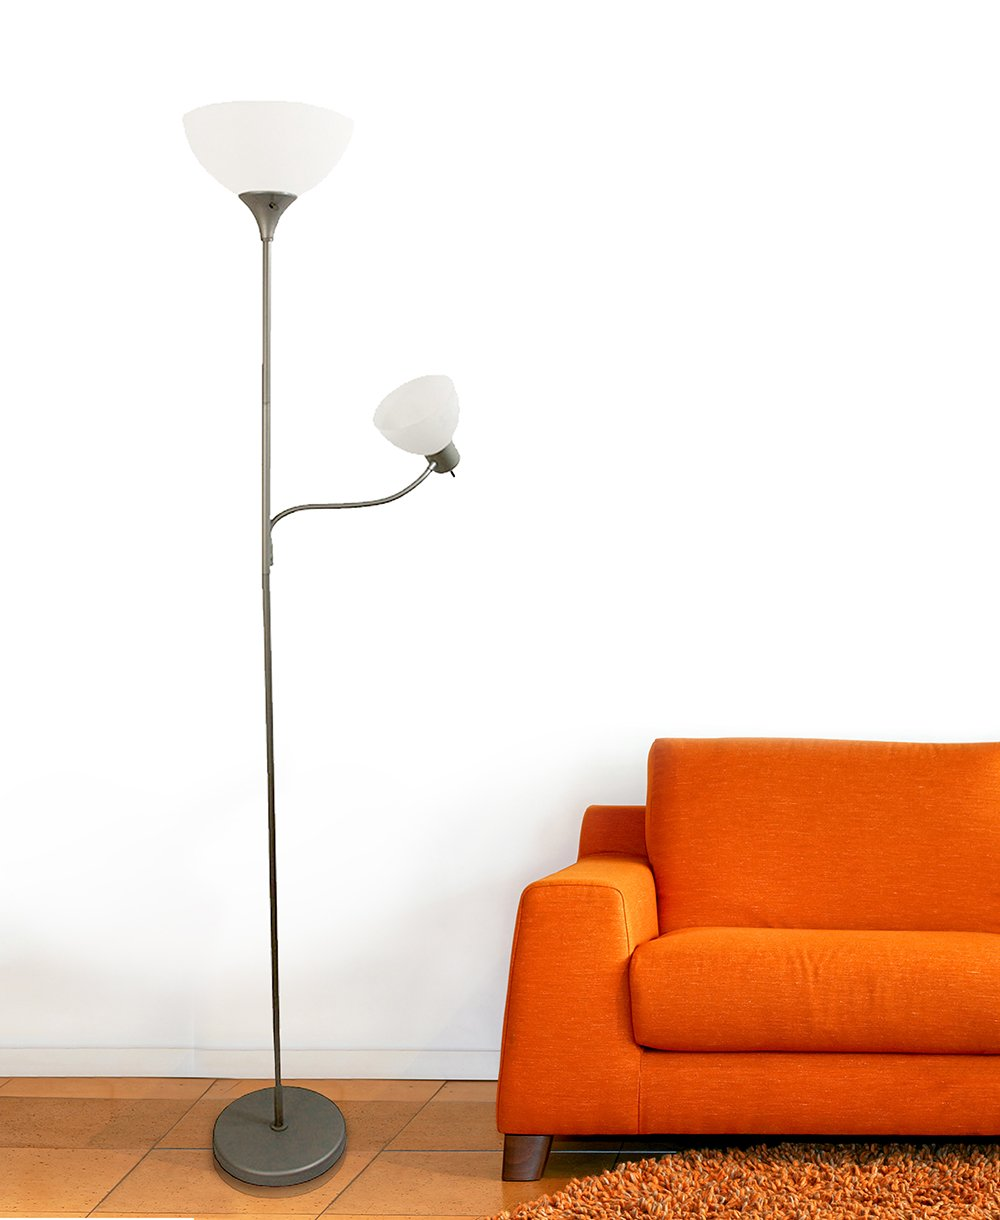 Simple Designs LF2000-SLV Floor Lamp with Reading Light, Silver - -  Amazon.com